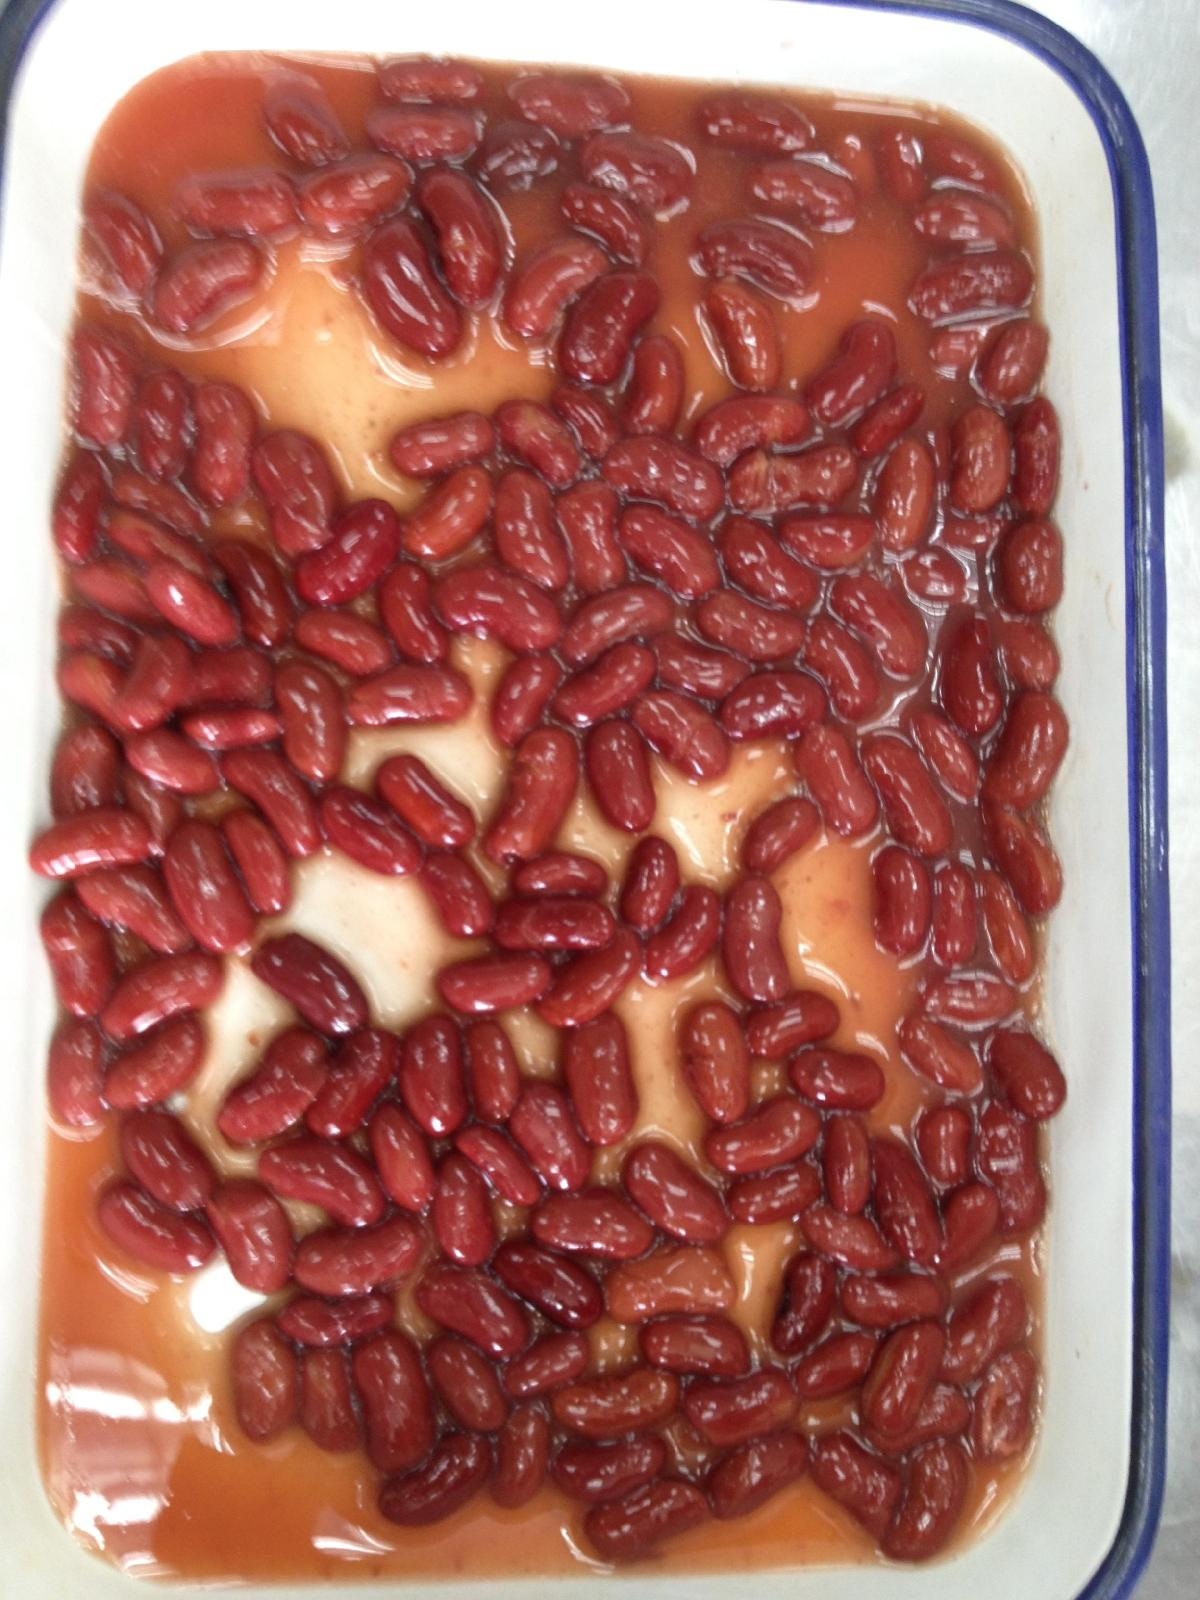 Canned Red Kidney Bean in Brine from factory directly